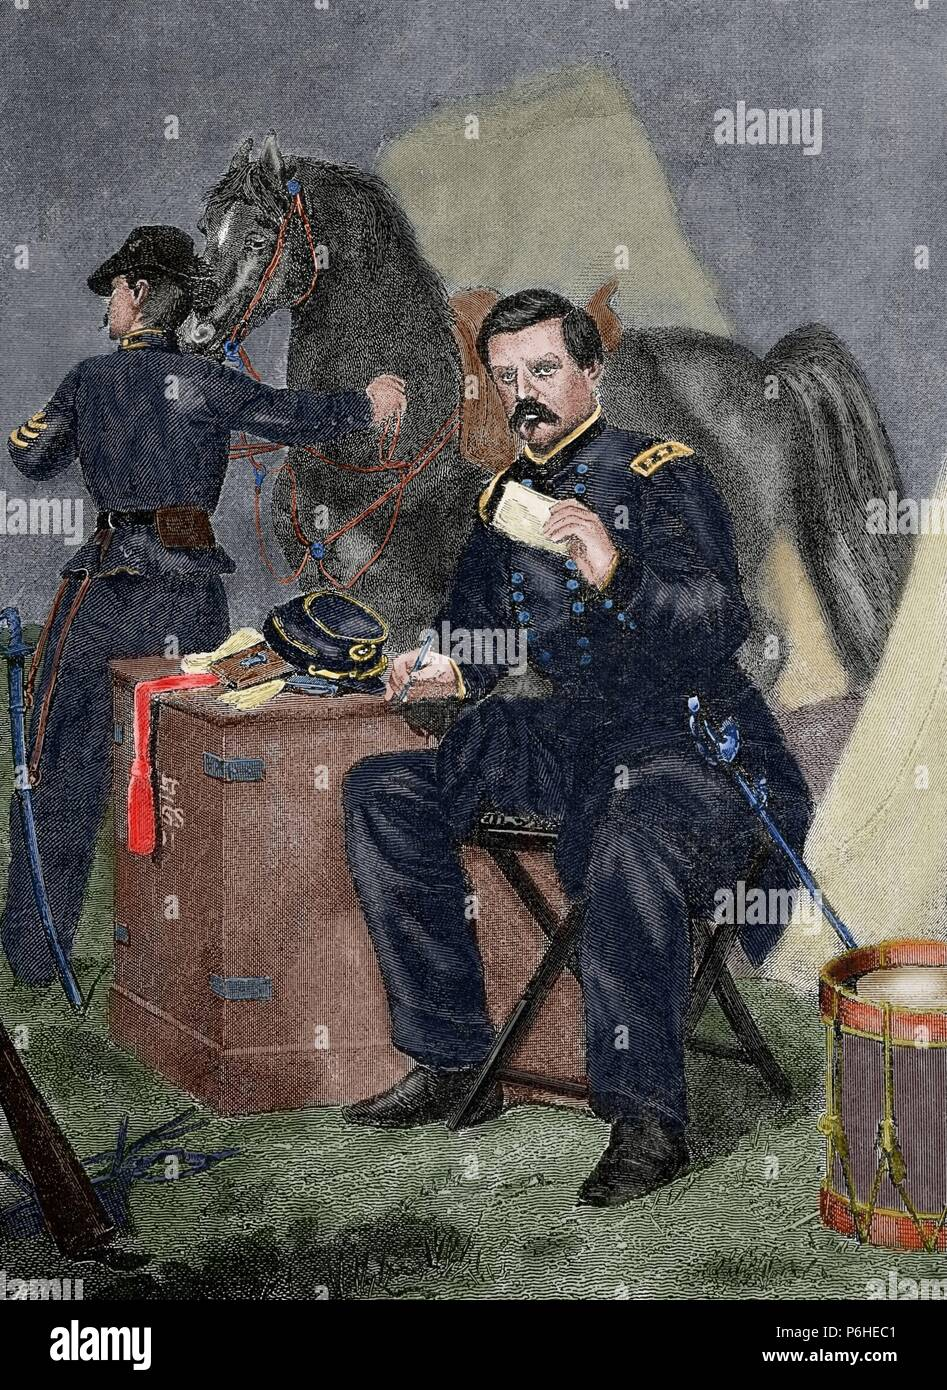 George Brinton McClellan (1826 âAi_ 1885). Major general during the American Civil War and the Democratic presidential nominee in 1864, who later served as Governor of New Jersey. Engraving. Colored. - Stock Image